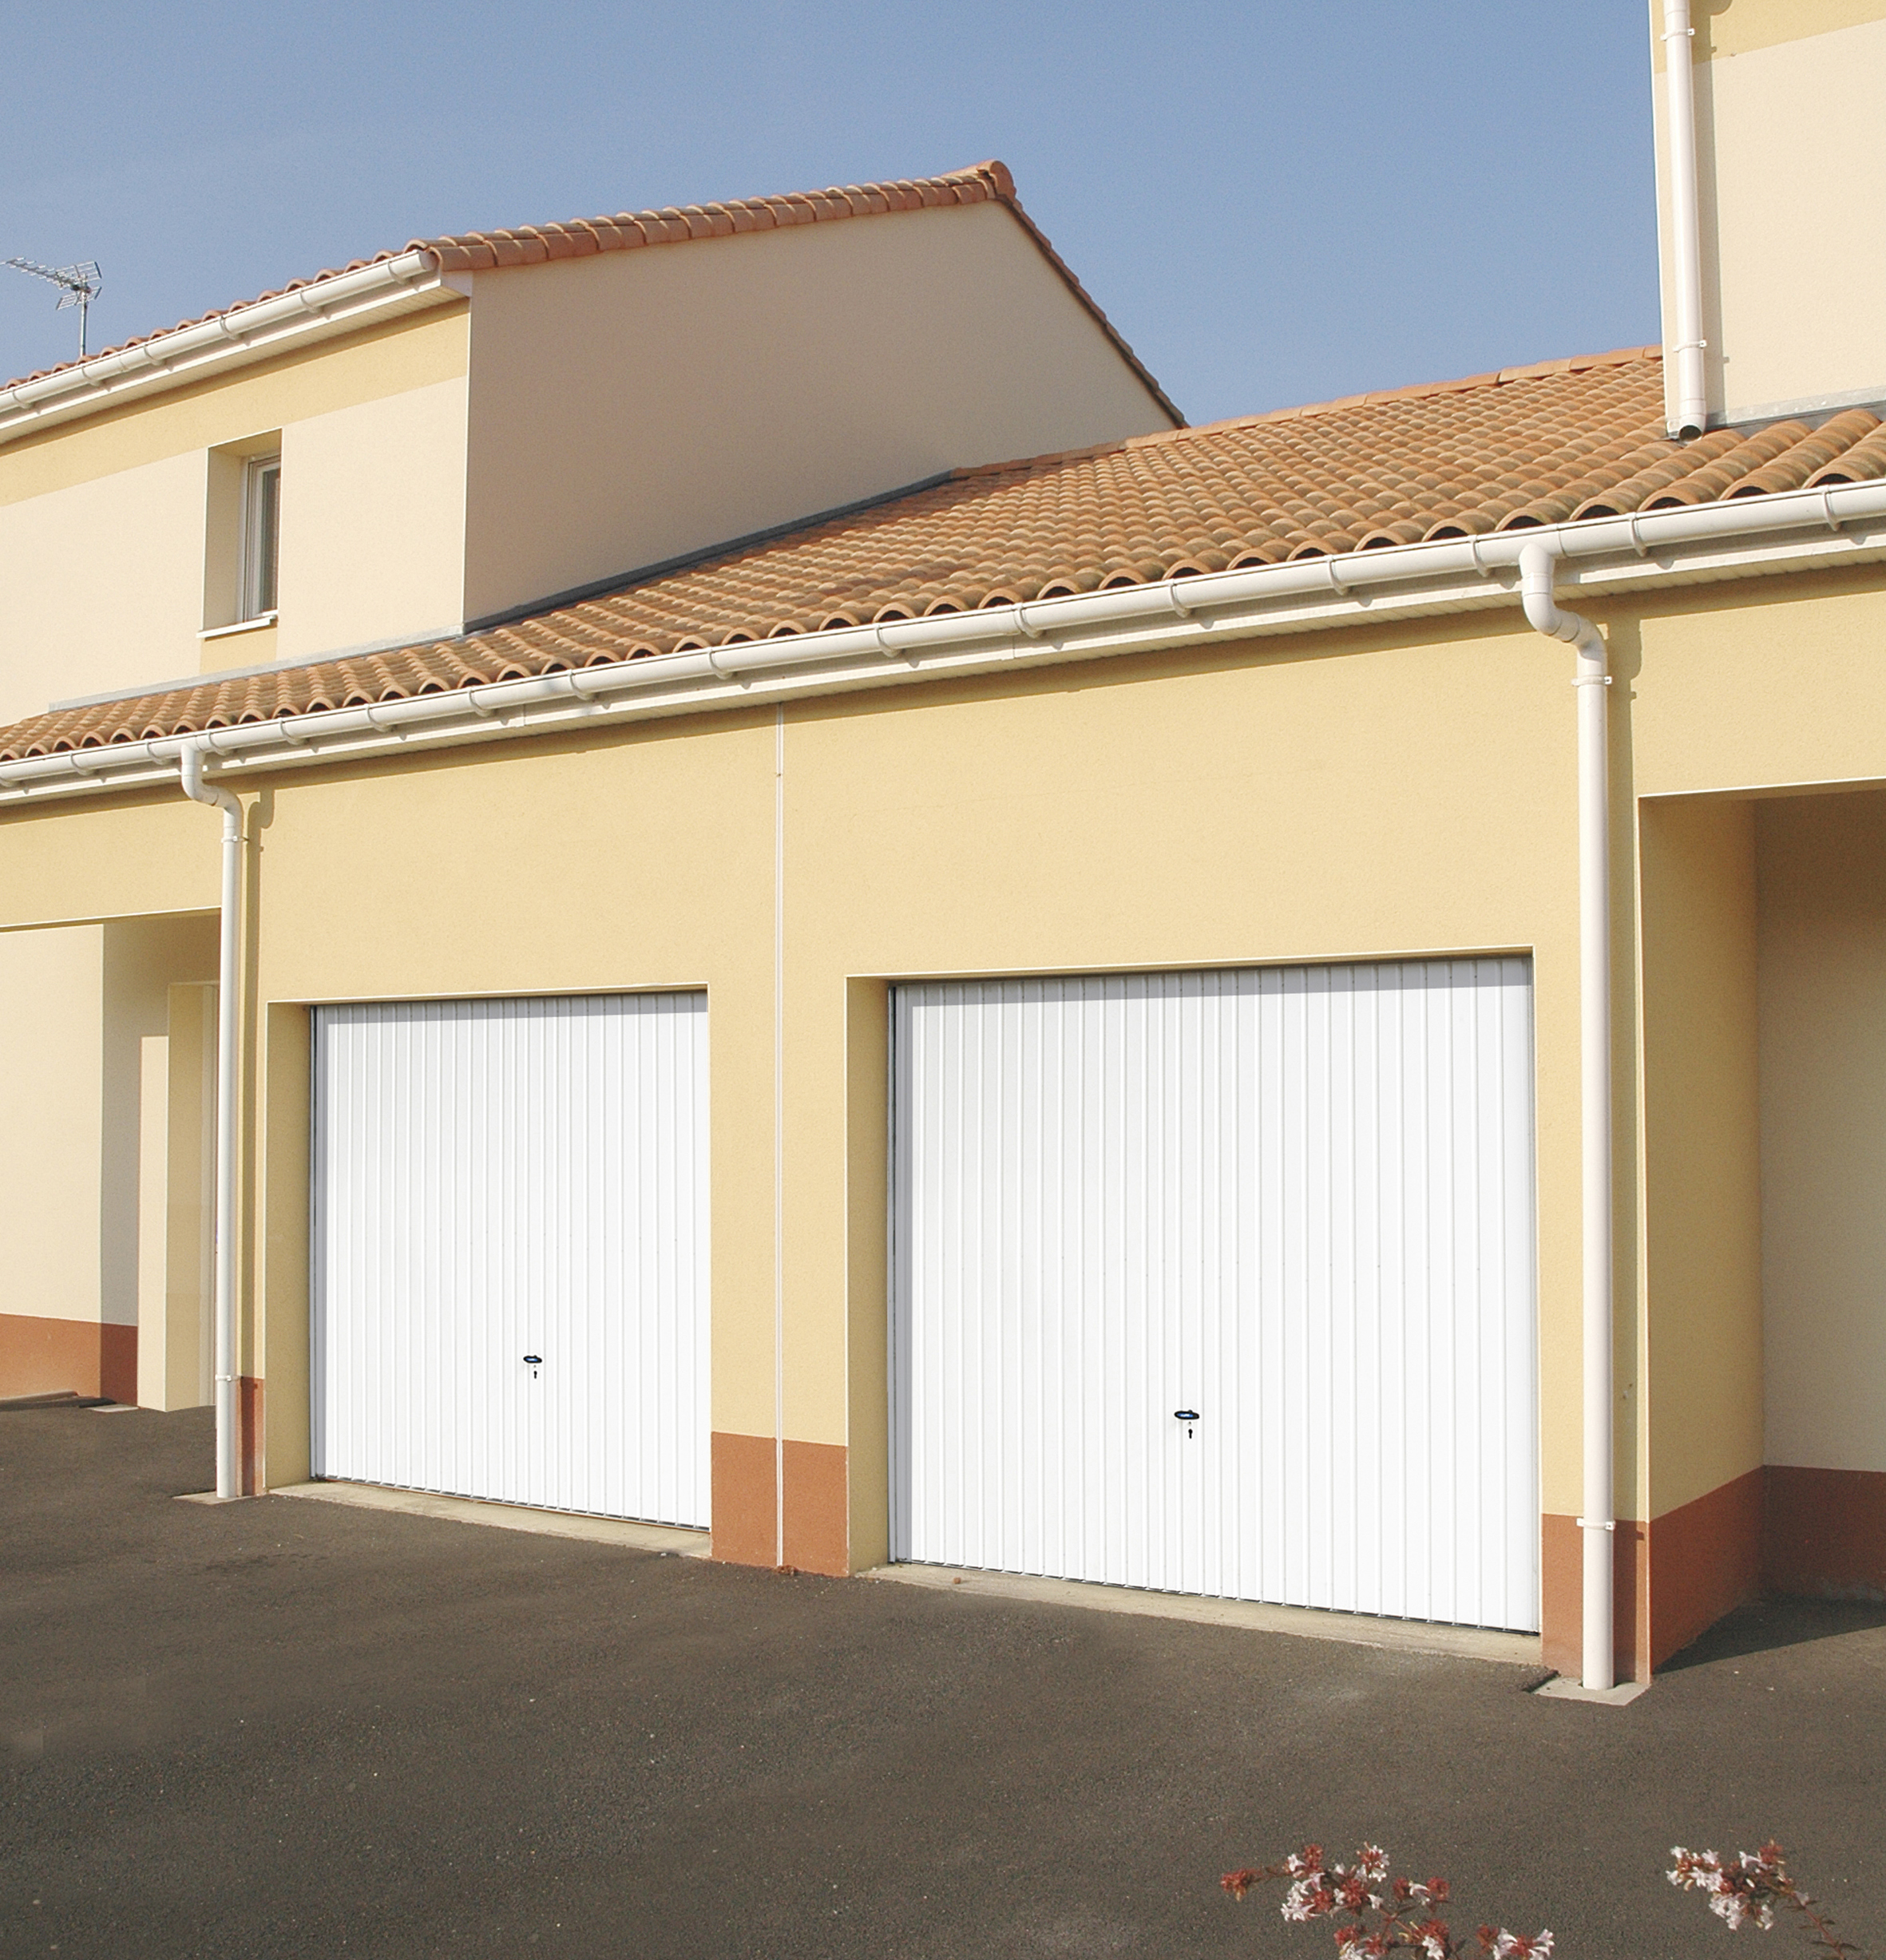 Baies fermetures grenoble fen tres volets baies - Come funziona porta basculante garage ...